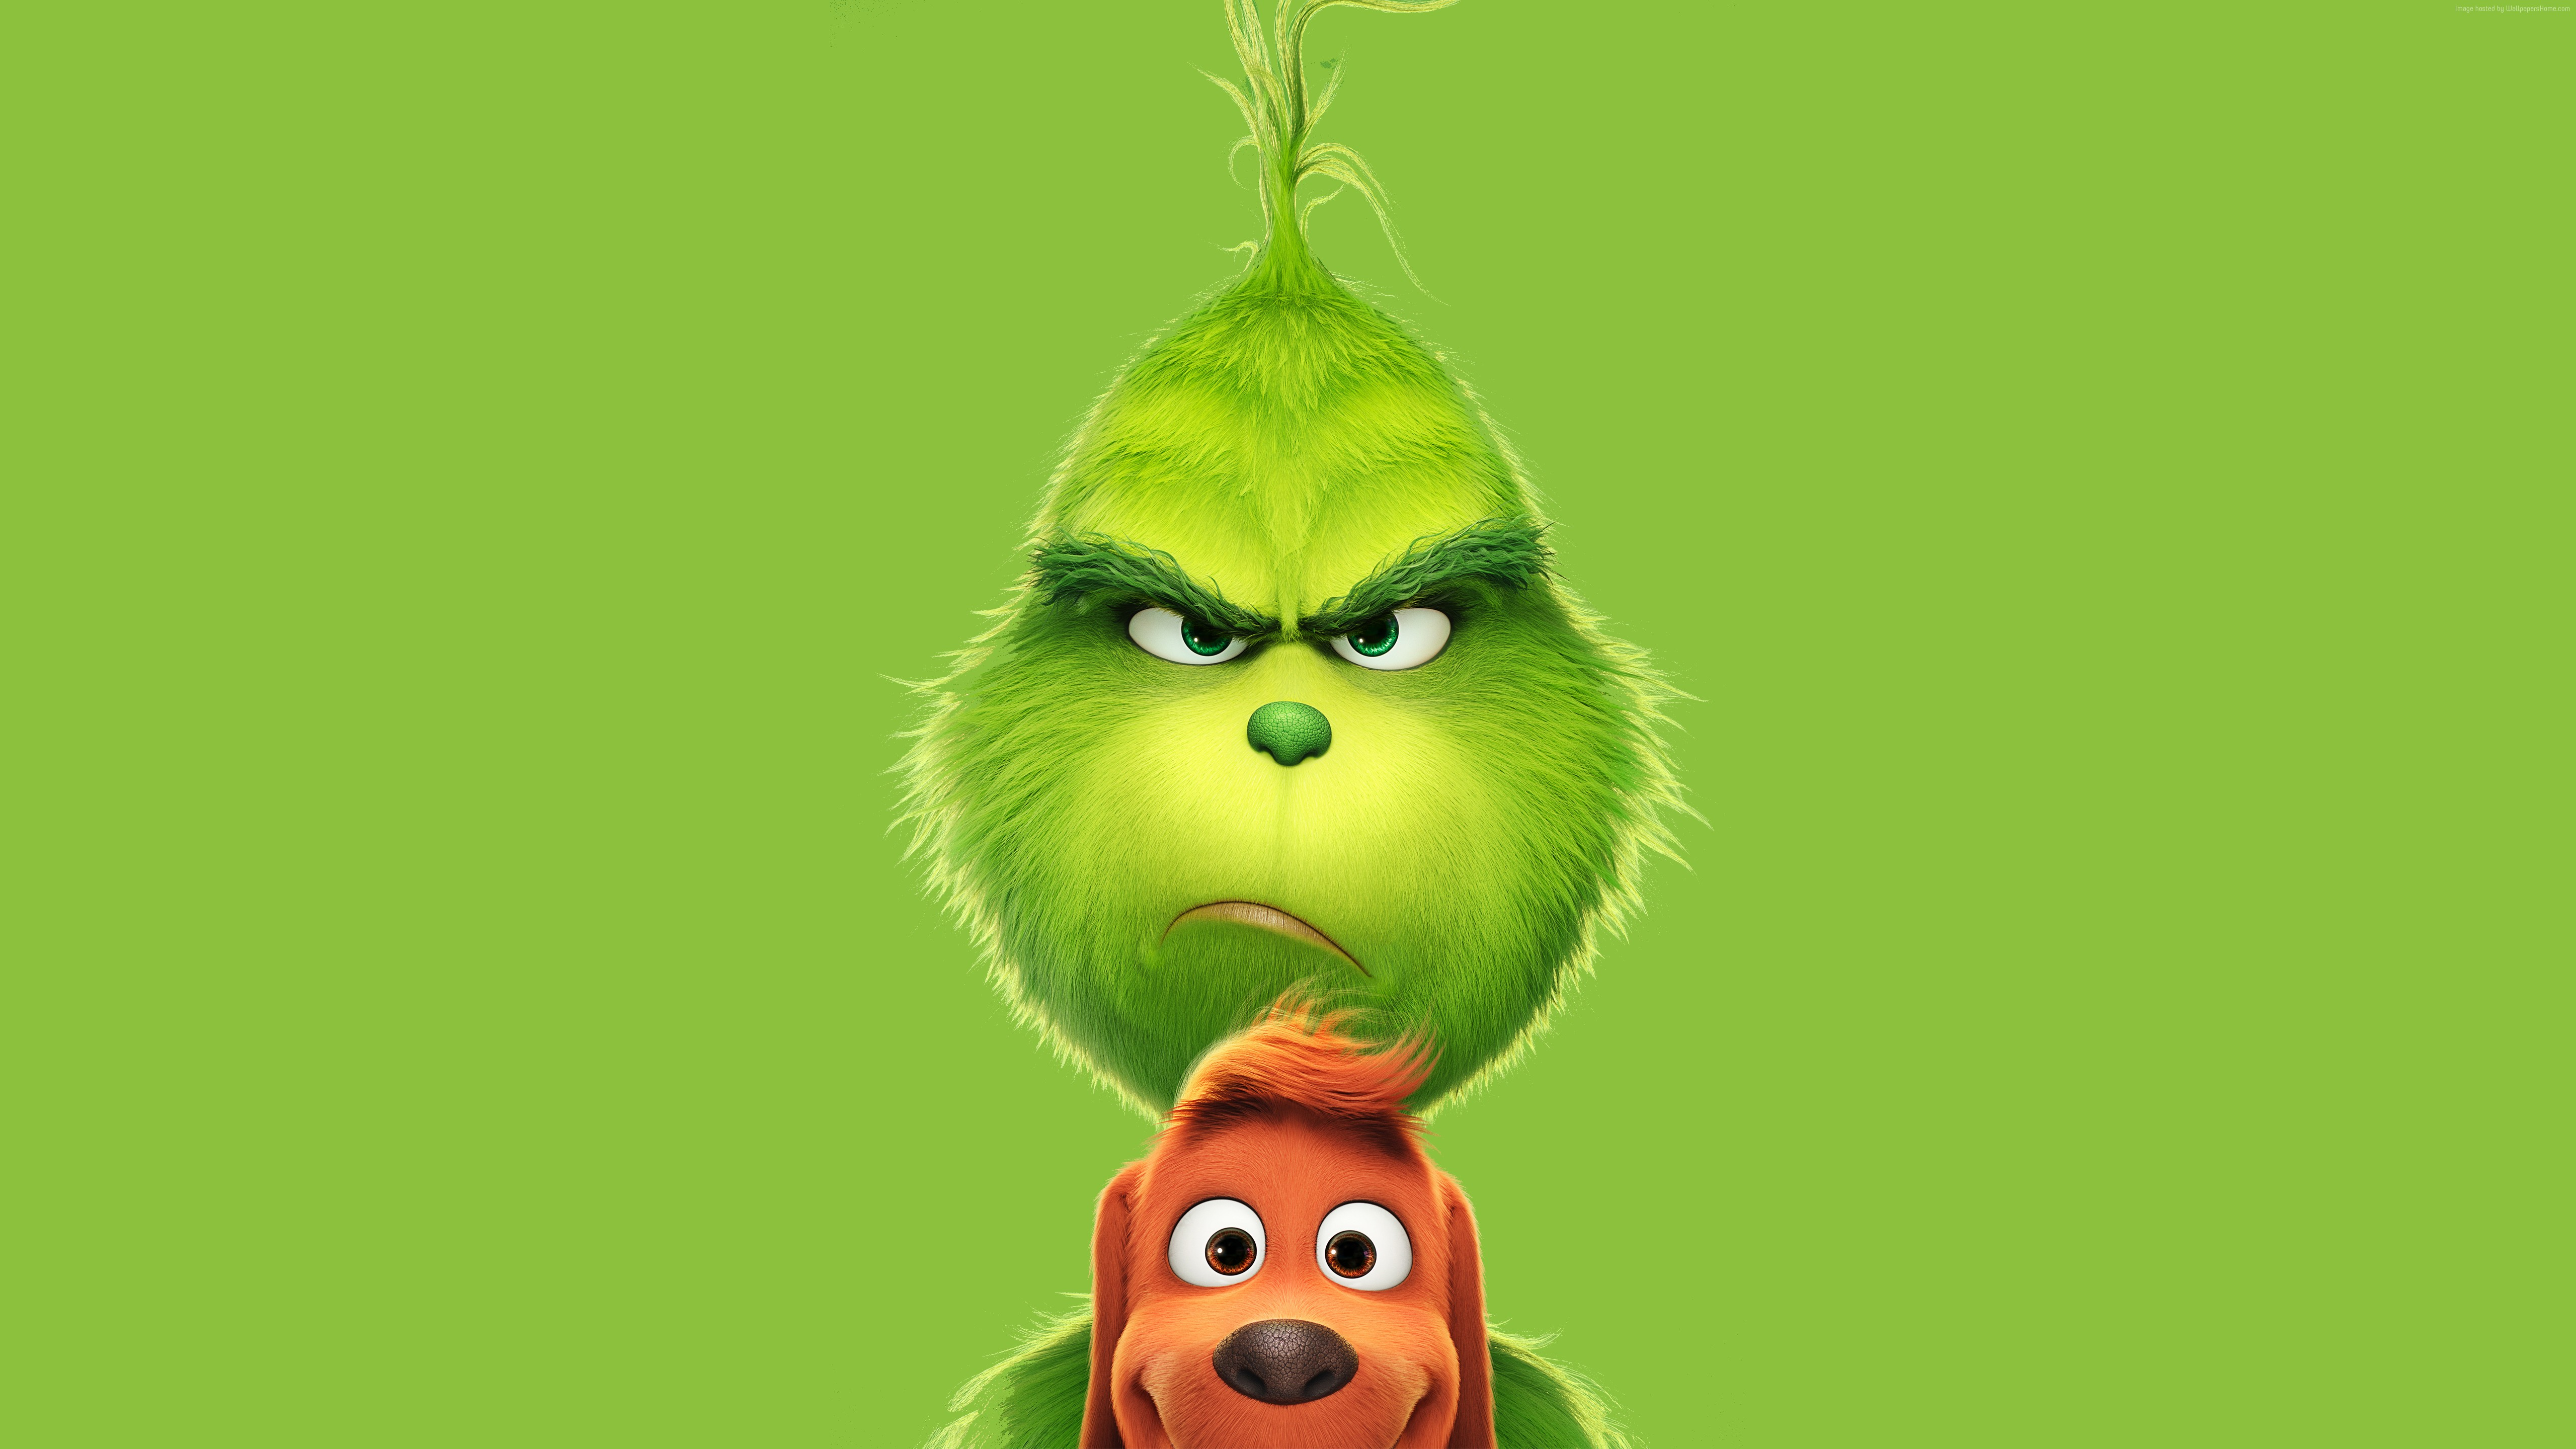 General 5120x2880 green movies animated movies green background The Grinch (2018)